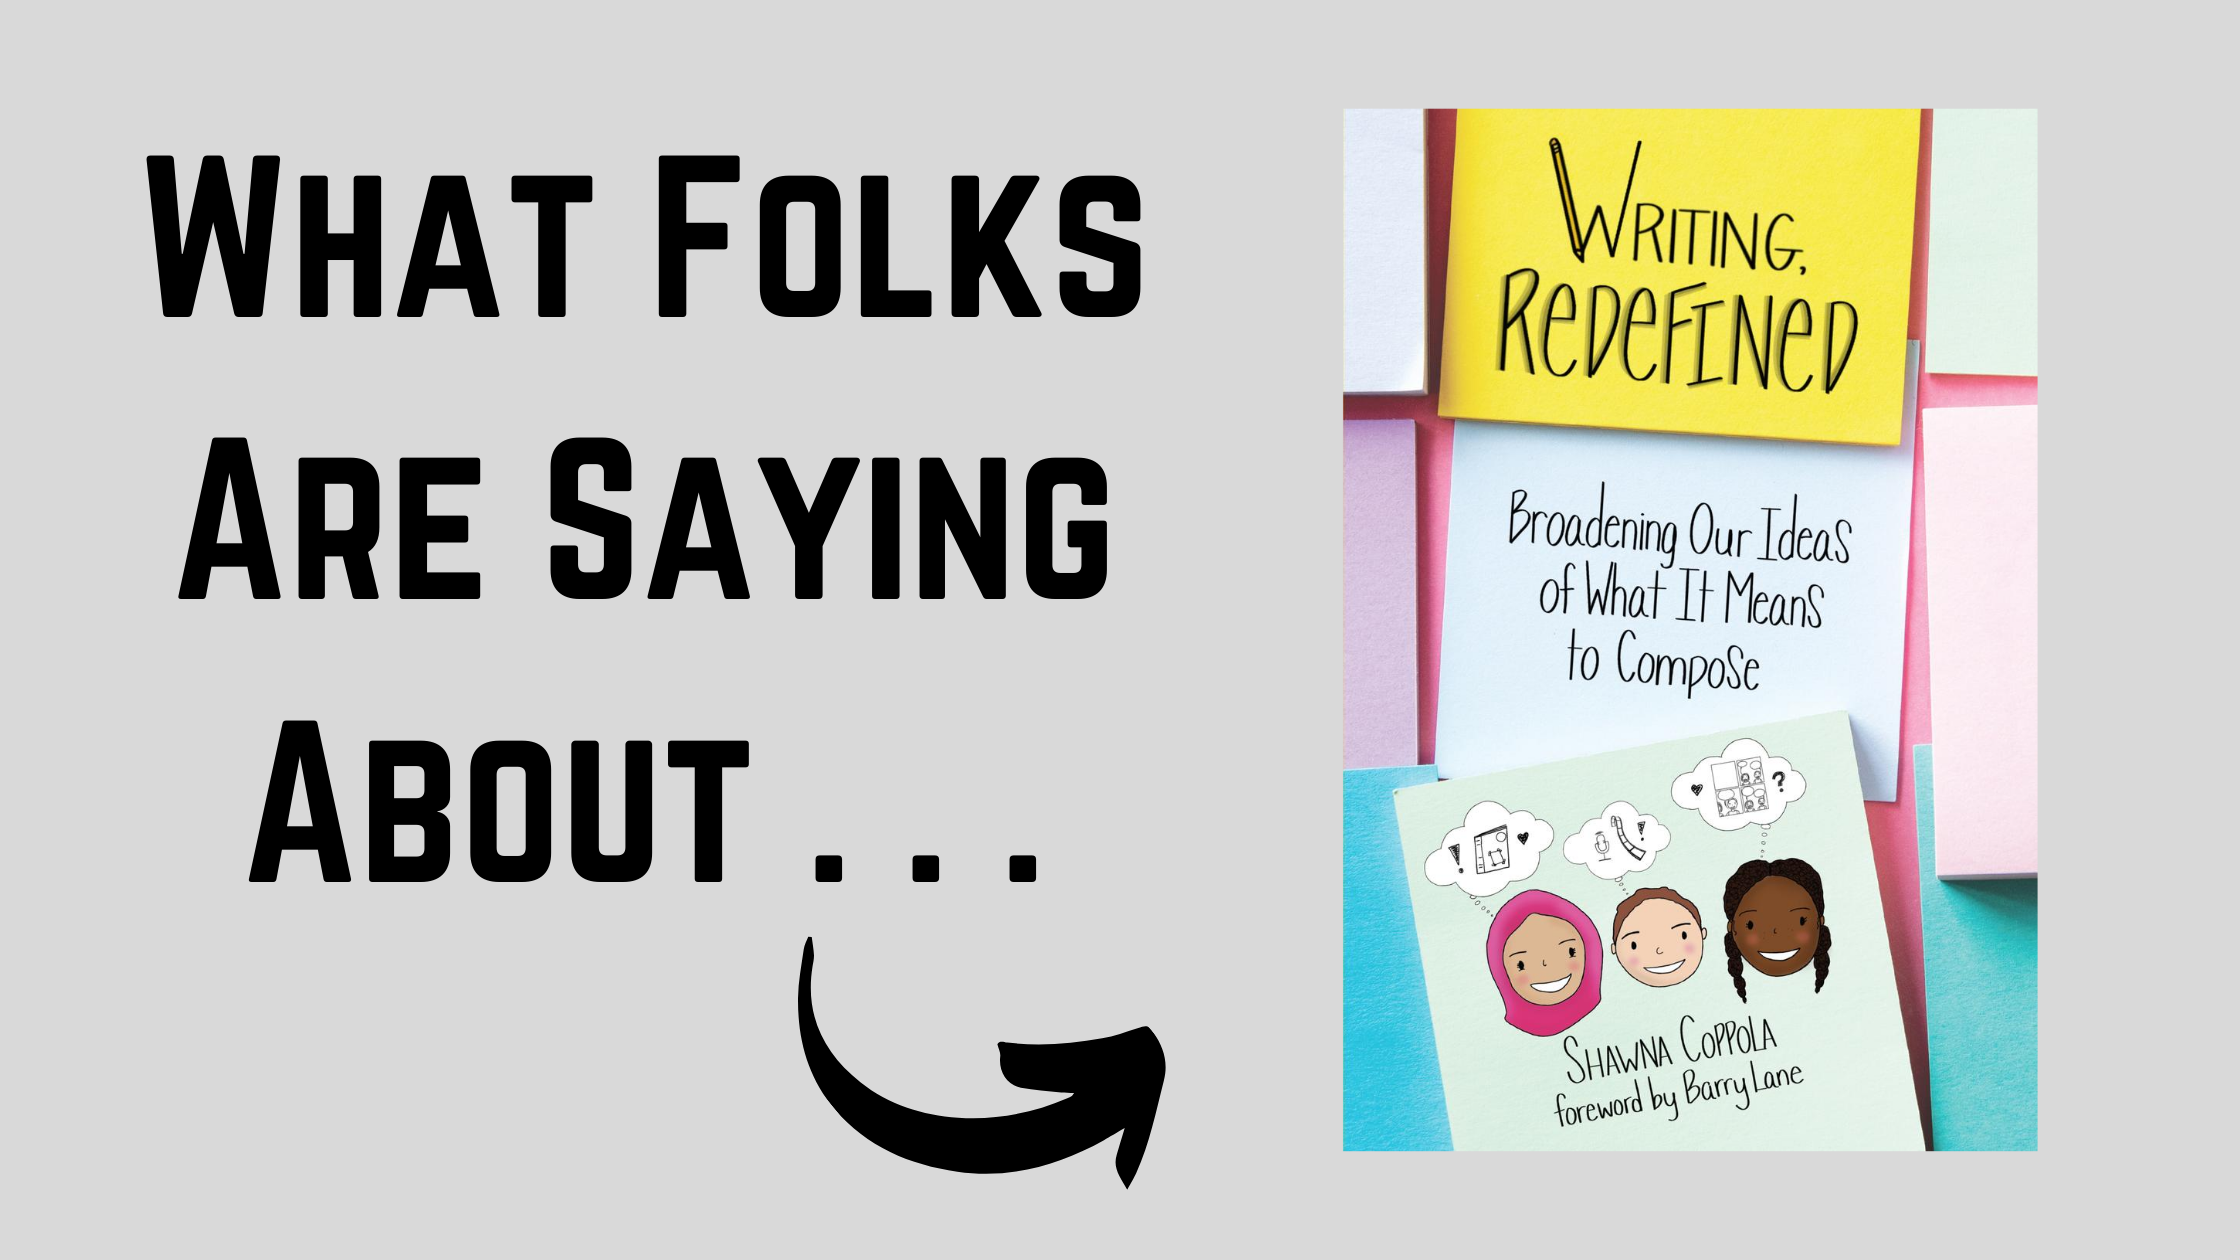 What Folks Are Saying About . . . Writing Redefined